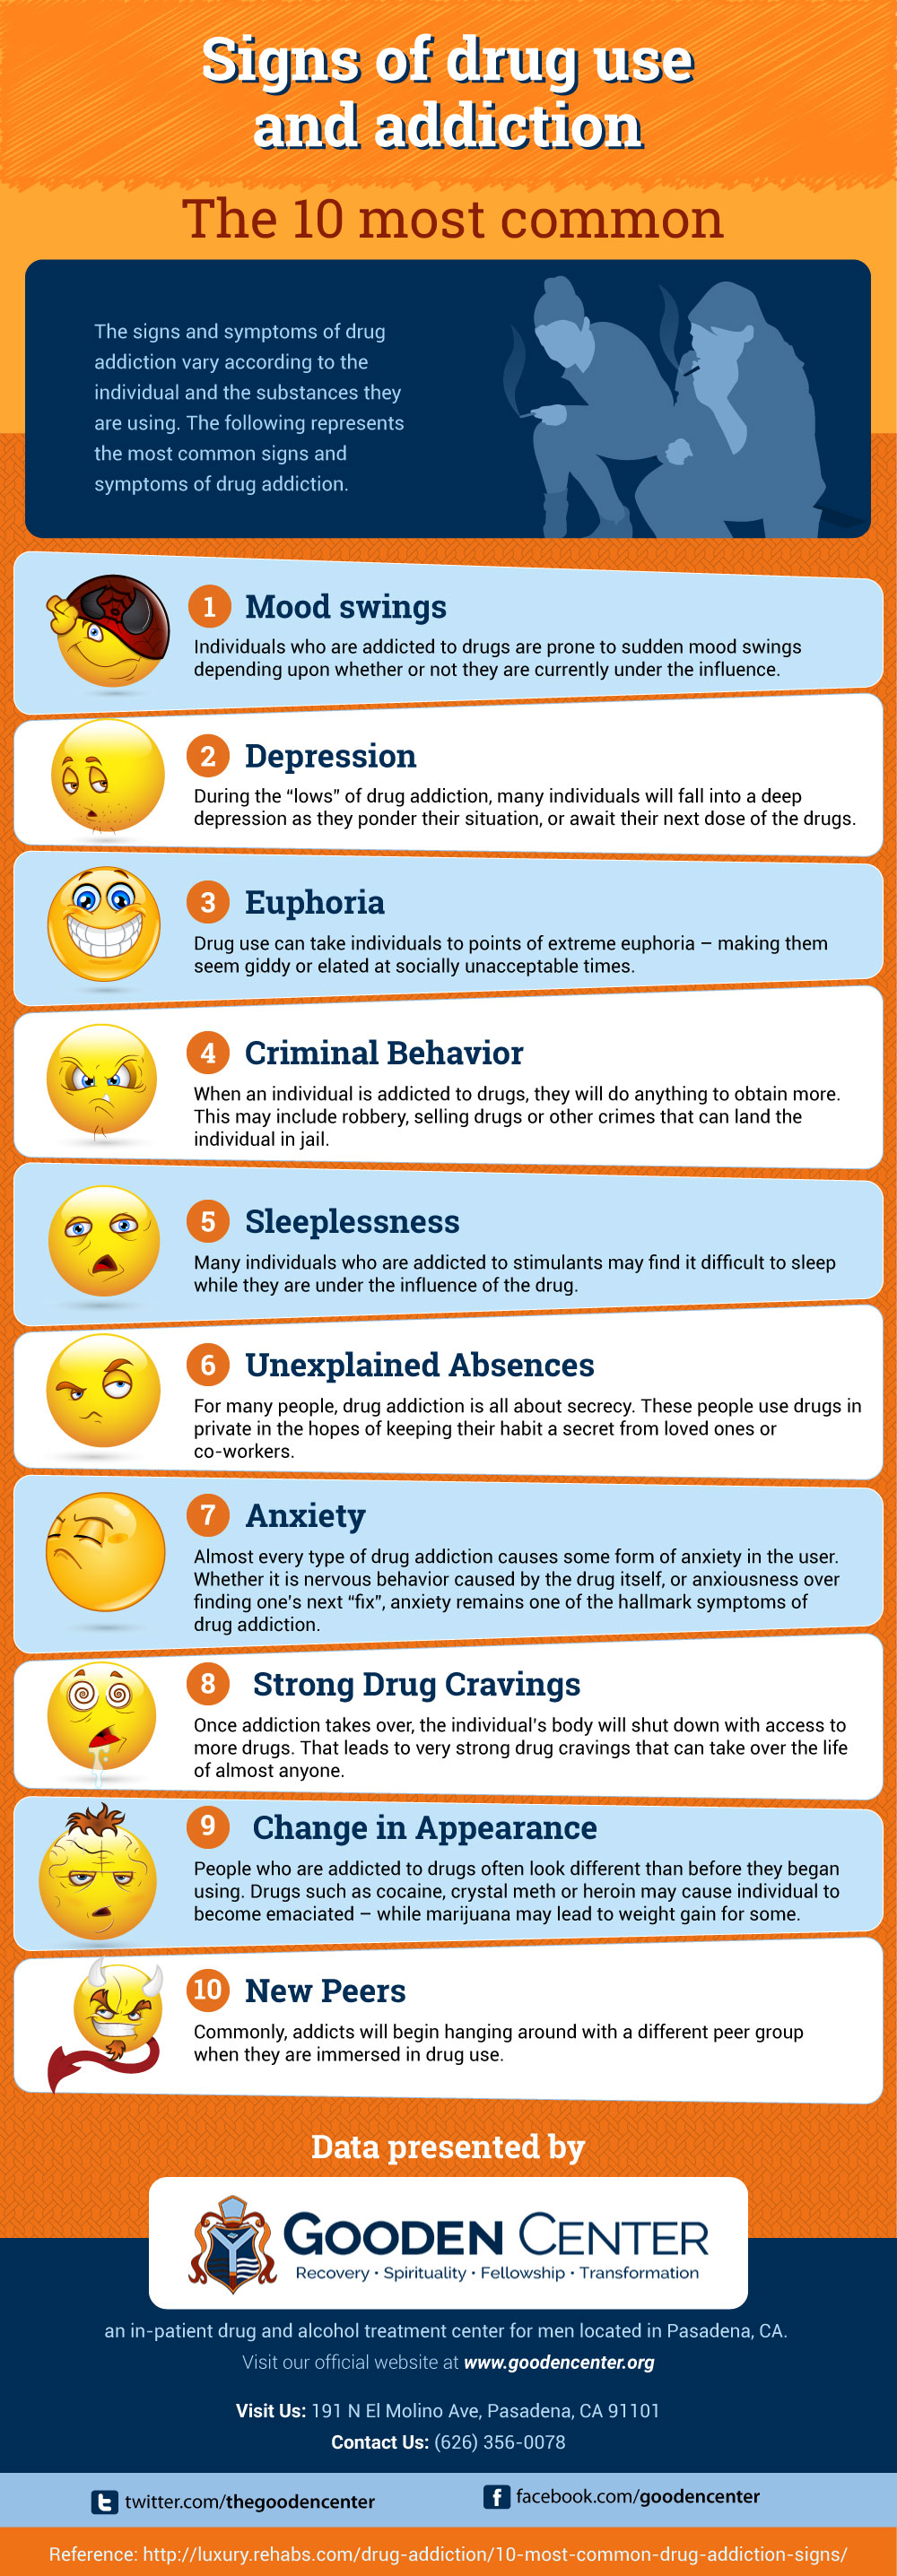 Signs of Drug Use and signs of drug addiction